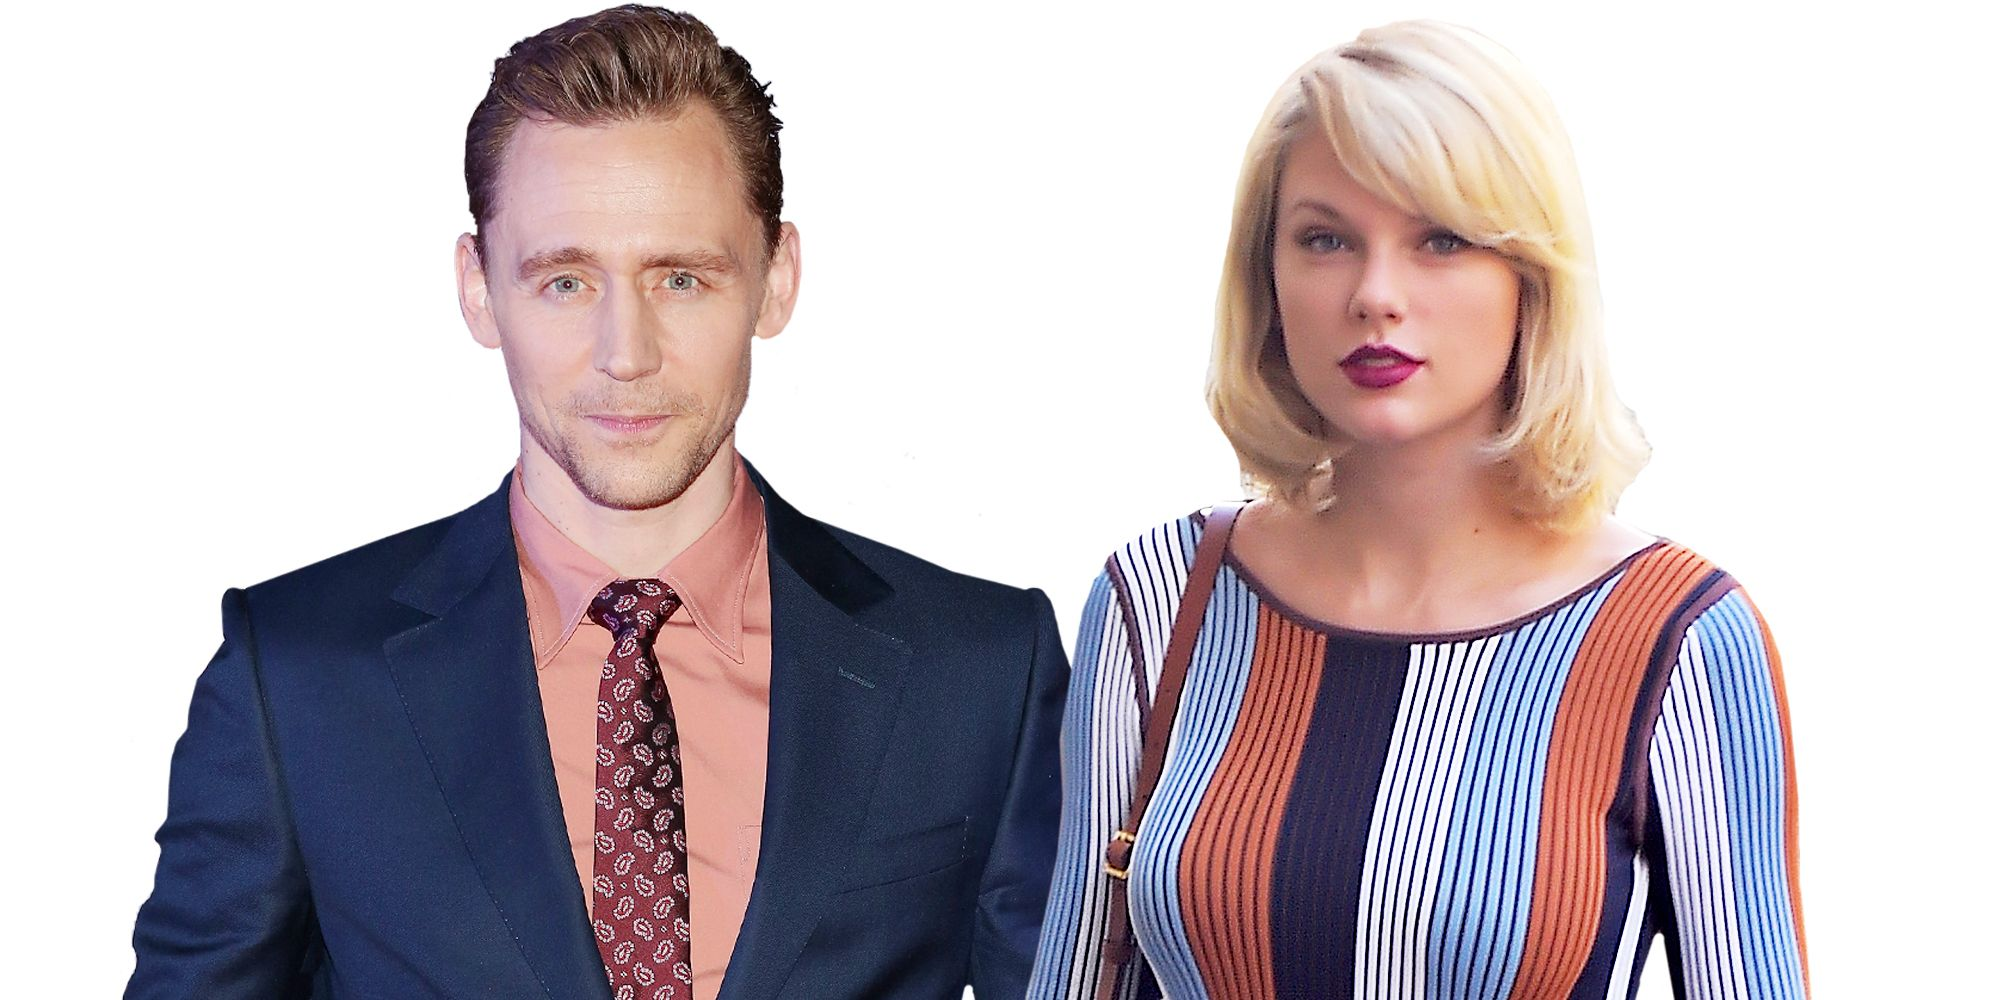 Tom Tailor Winter Love A Fashion Friend Tom Hiddleston On Taylor Swift Dating Regrets Tom Hiddleston